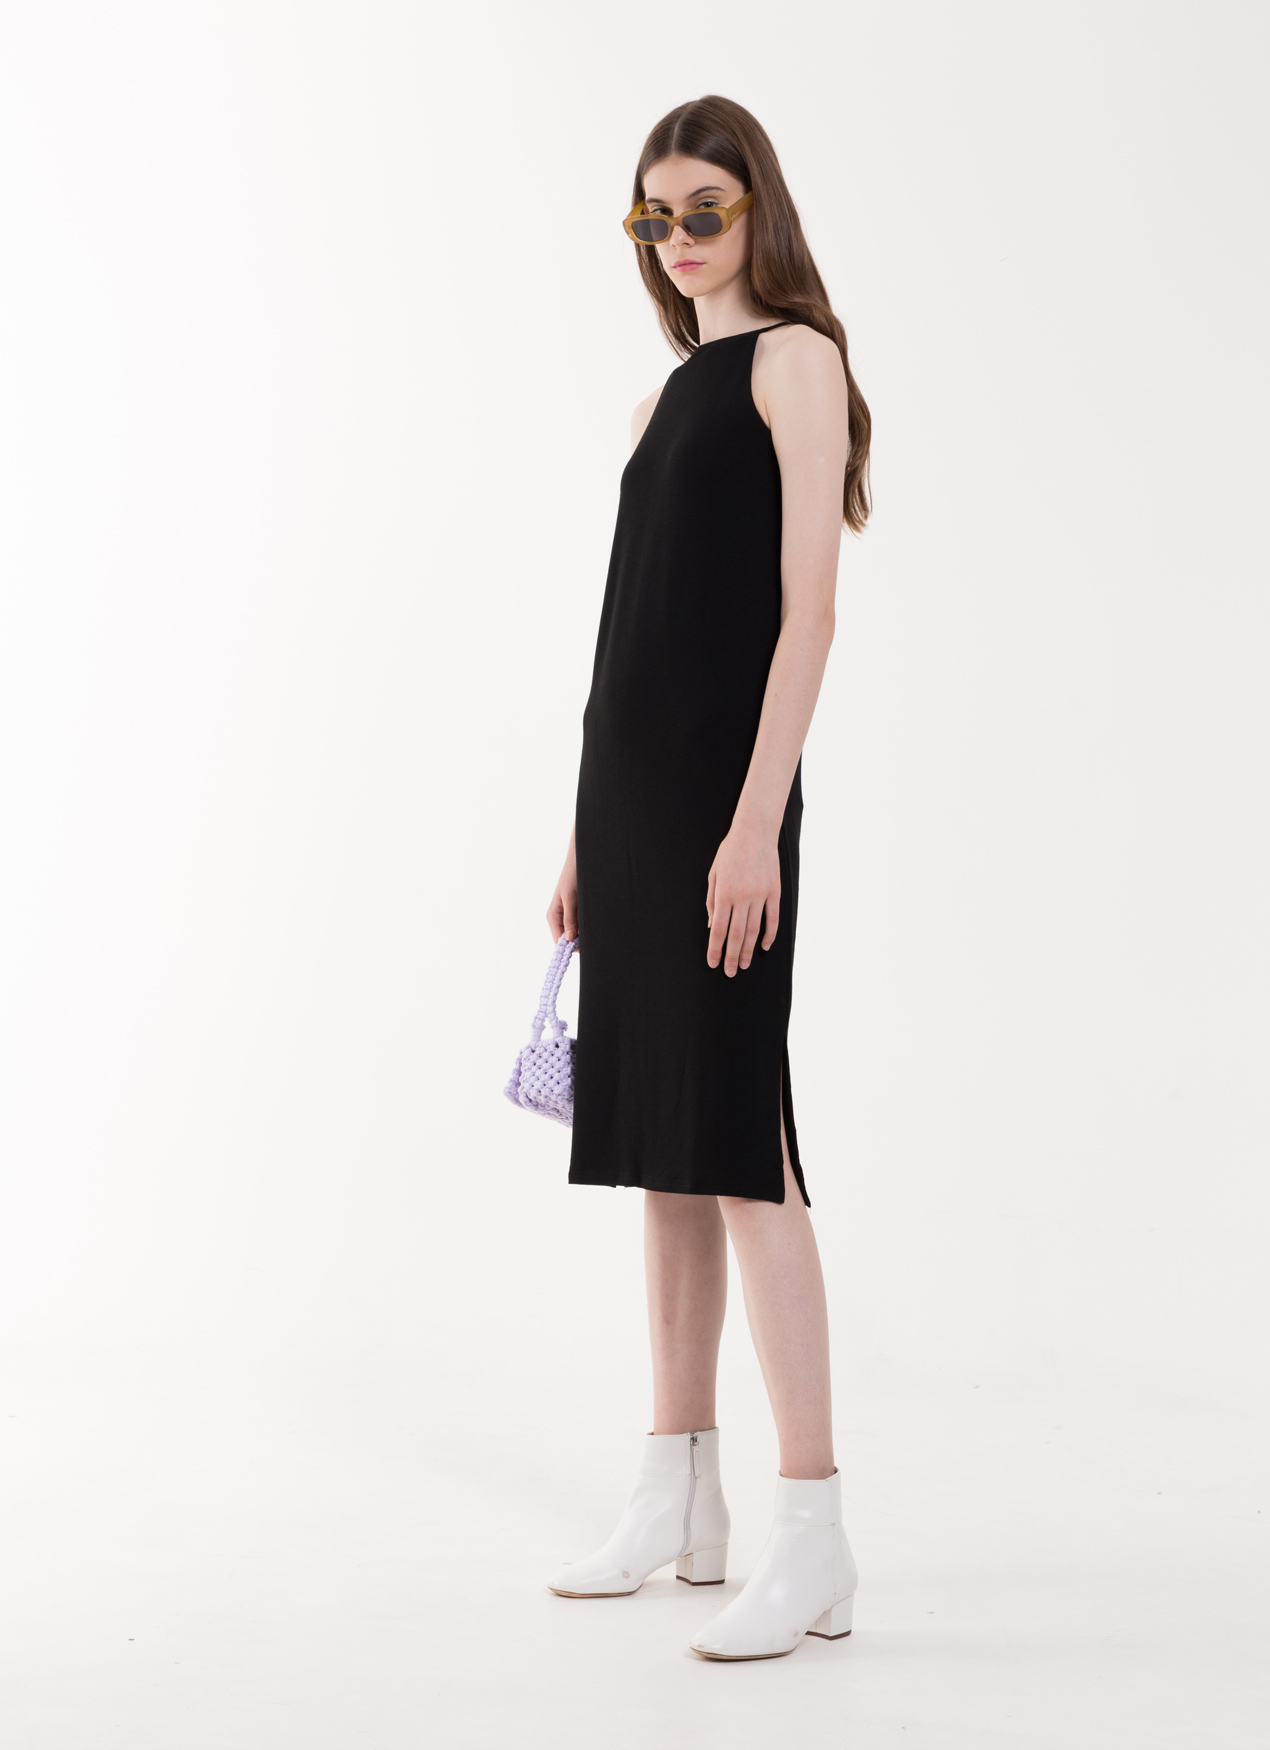 BOWN Teagan Dress - Black